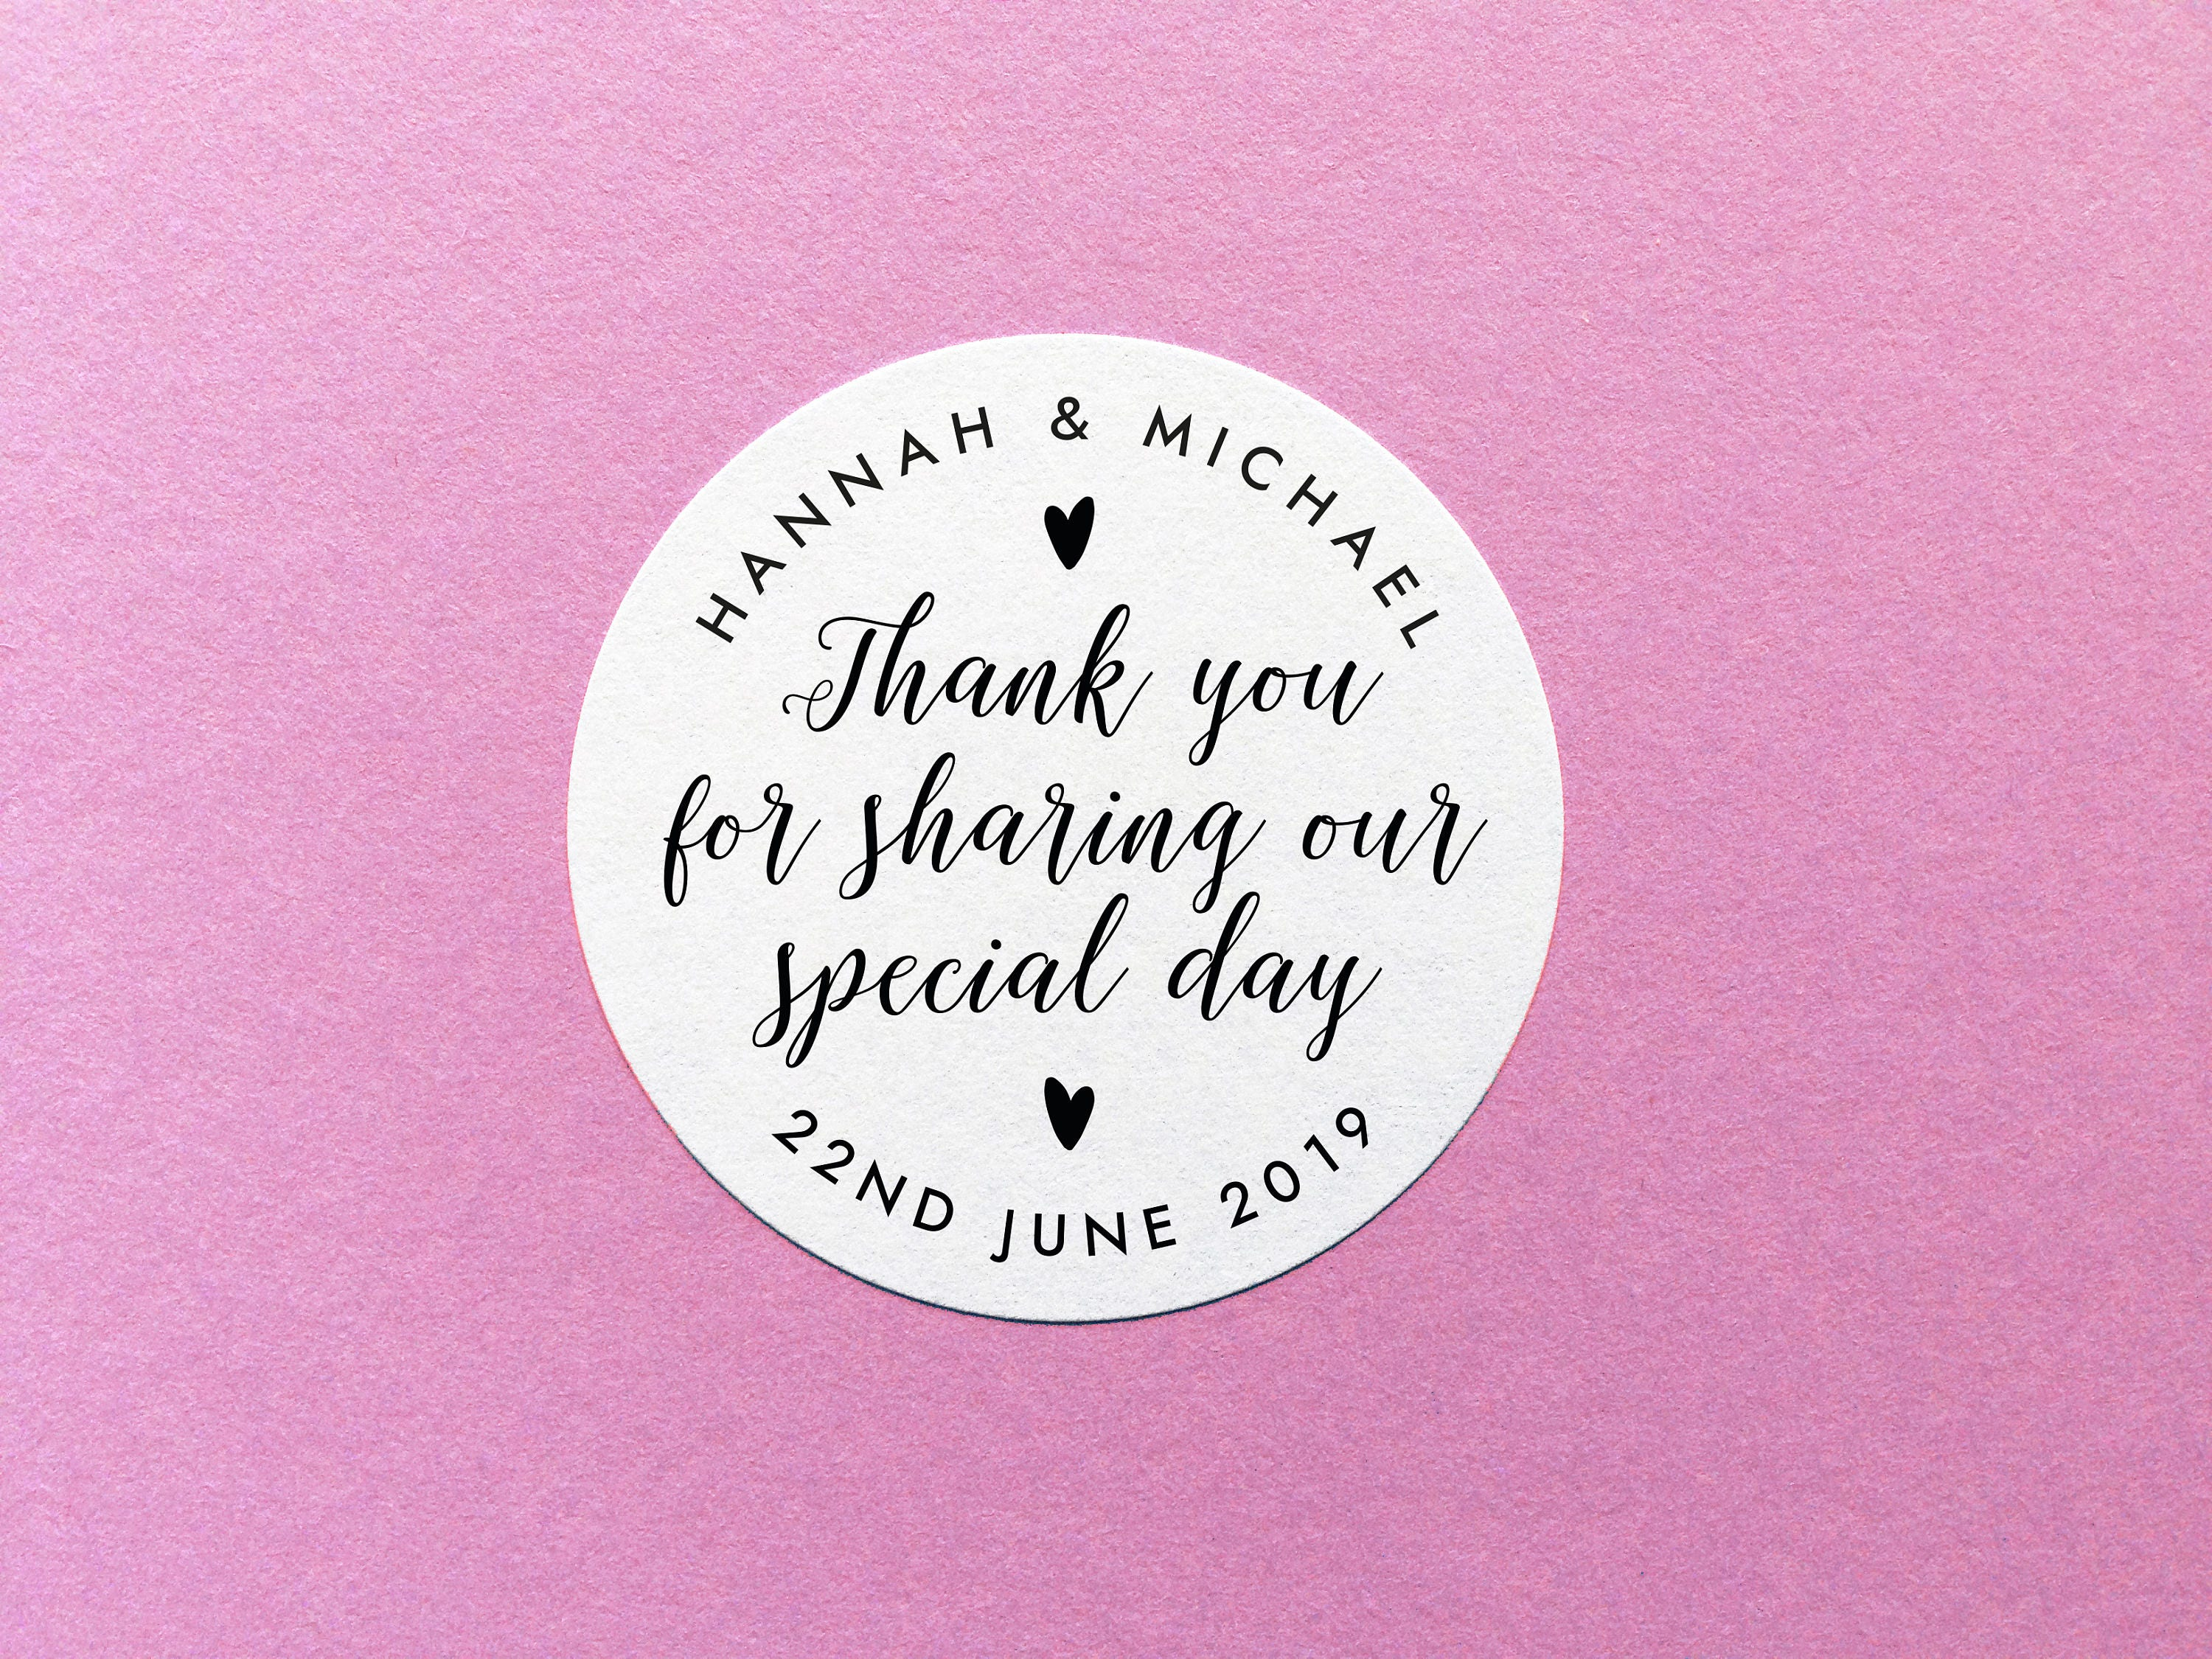 Thank you stickers thank you for sharing our special day stickers personalized thank you labels party favor stickers wedding favor label